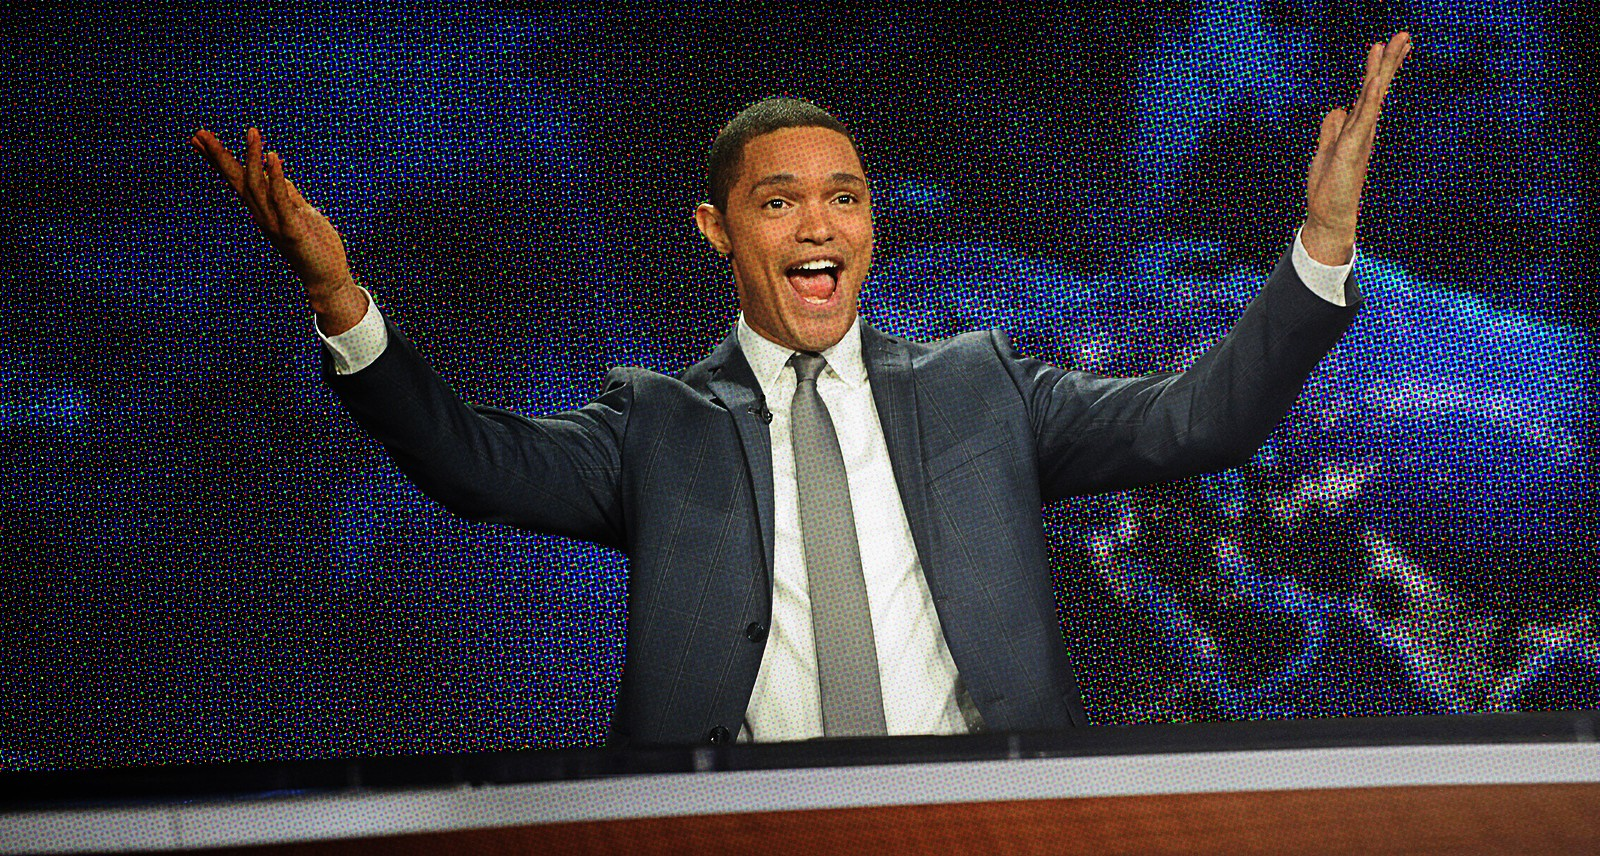 Trevor Noah Doesn't Care About Your Hot Takes